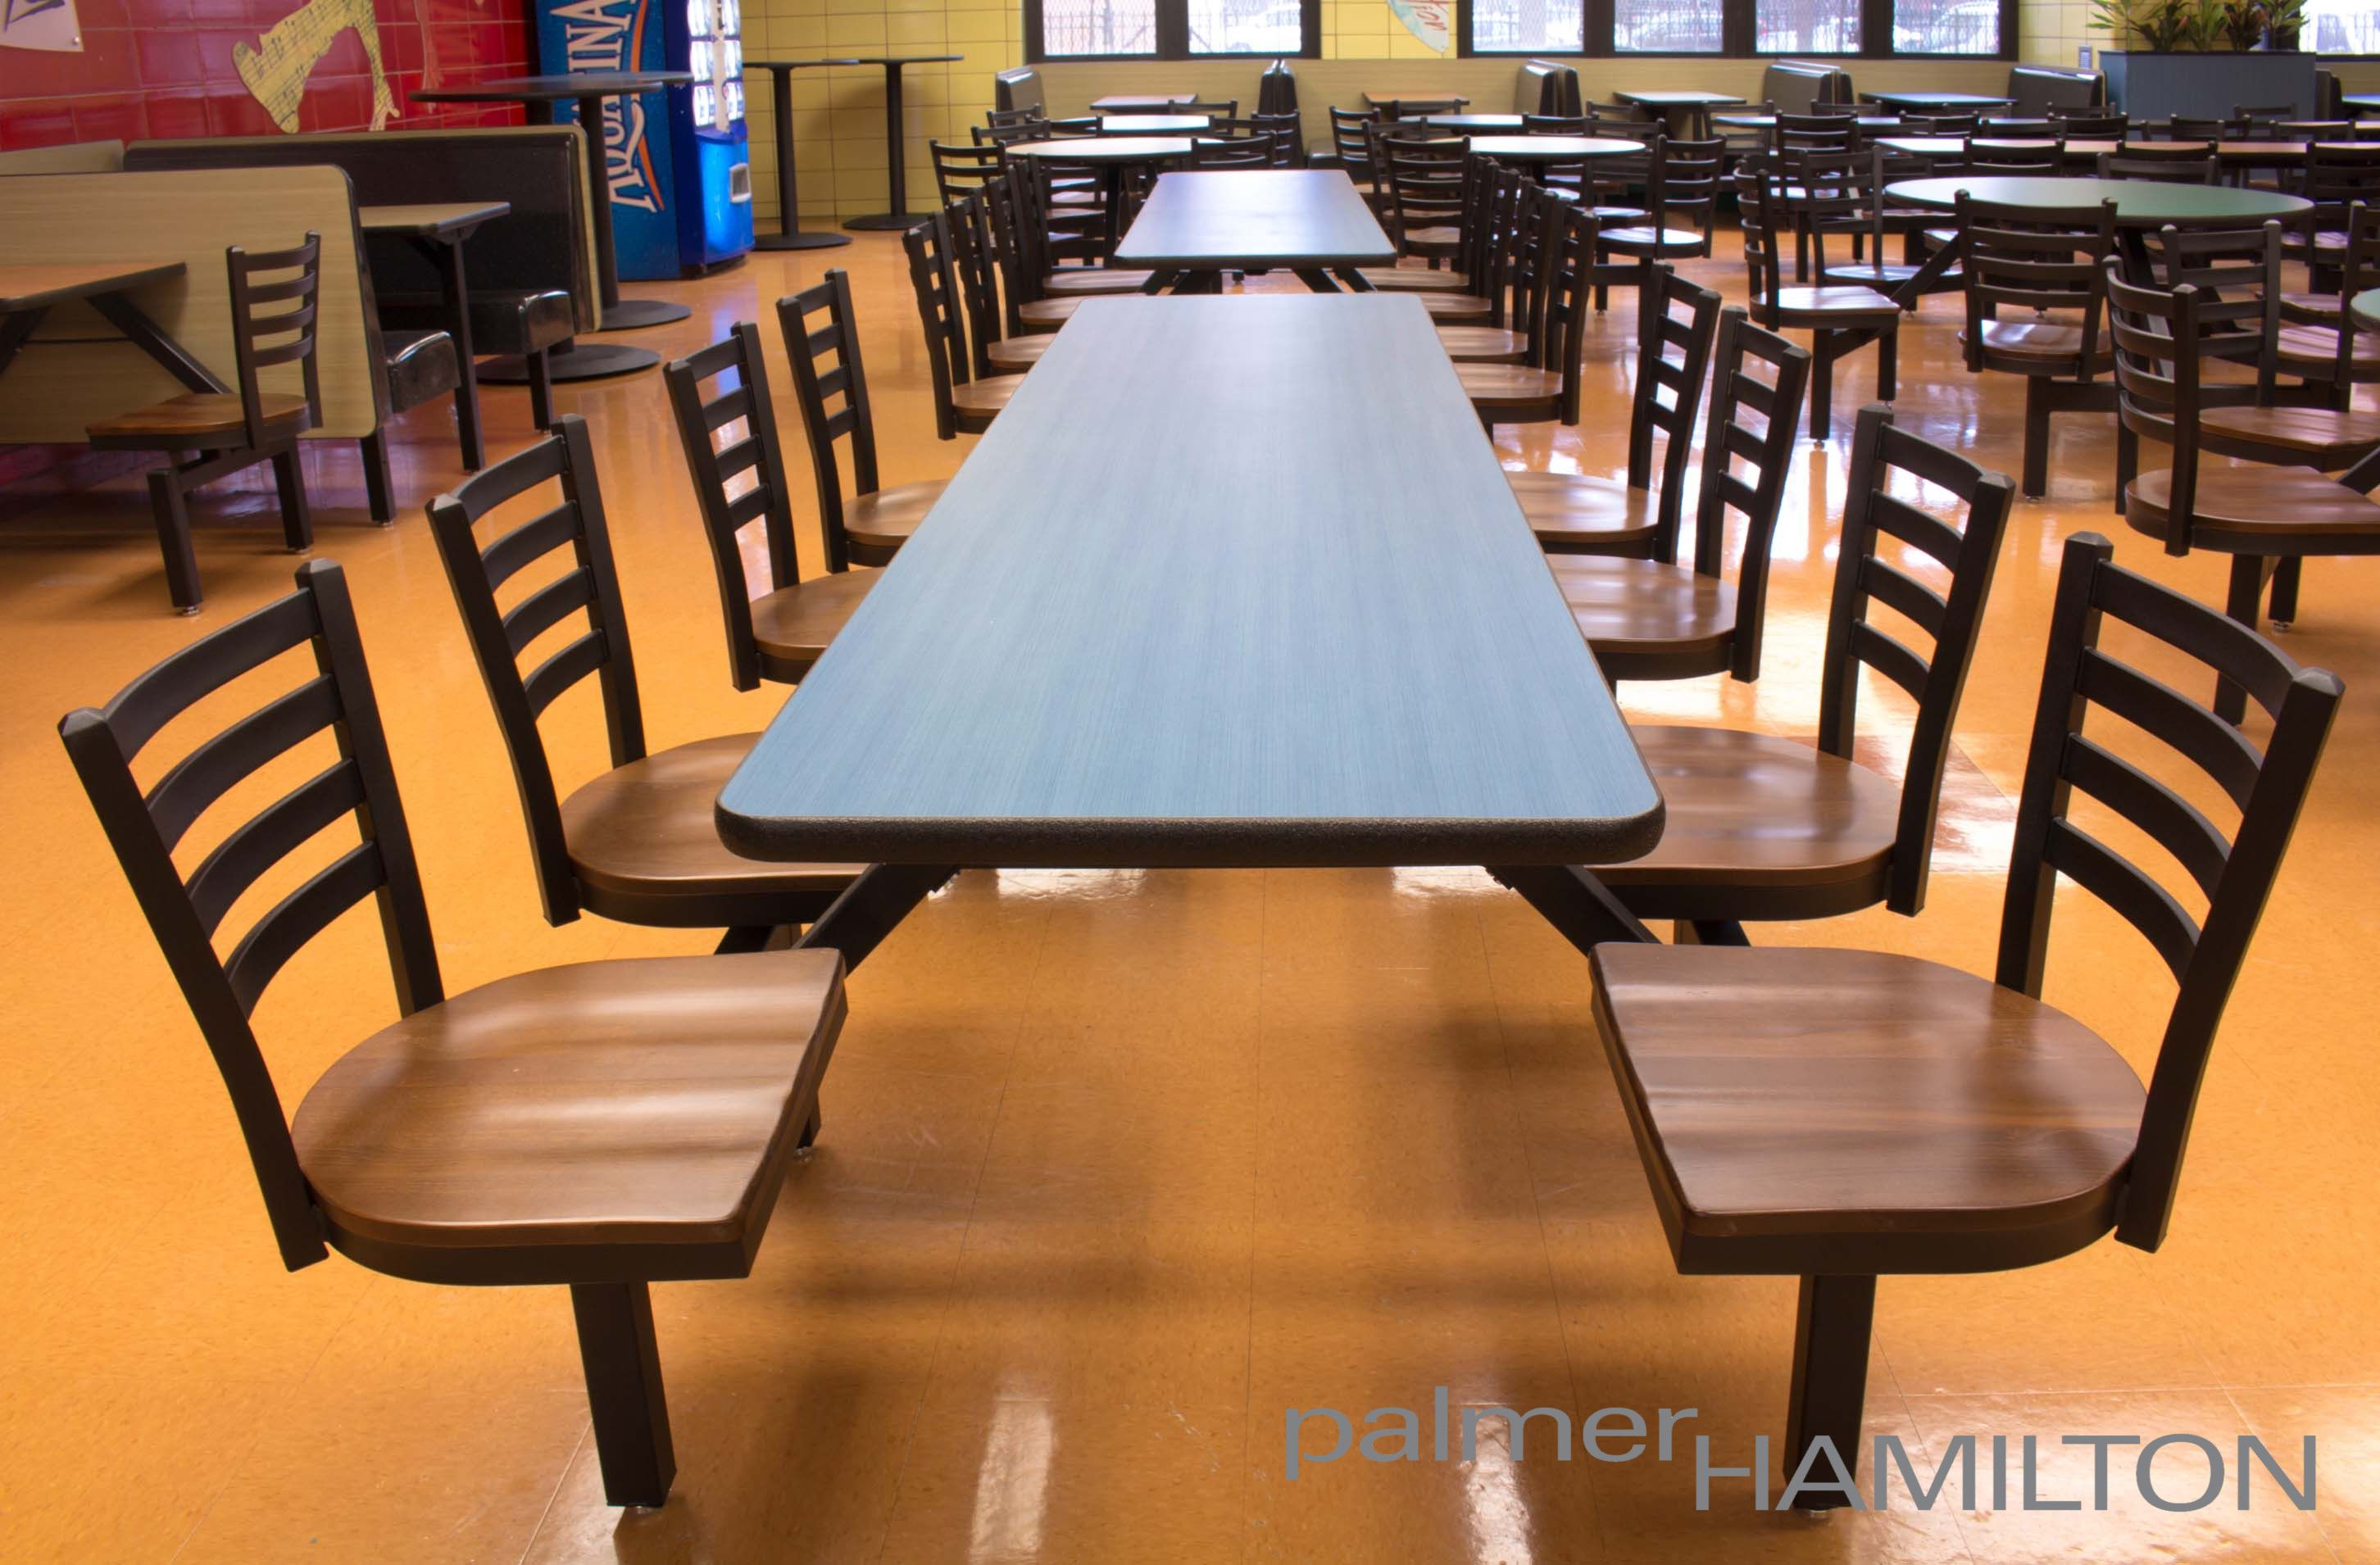 High School Dining Space With Covey Cluster Seating Indoor Or Outdoor Furniture Learn More At Www Palmerhamilton Flexible Furniture Indoor Seating Seating